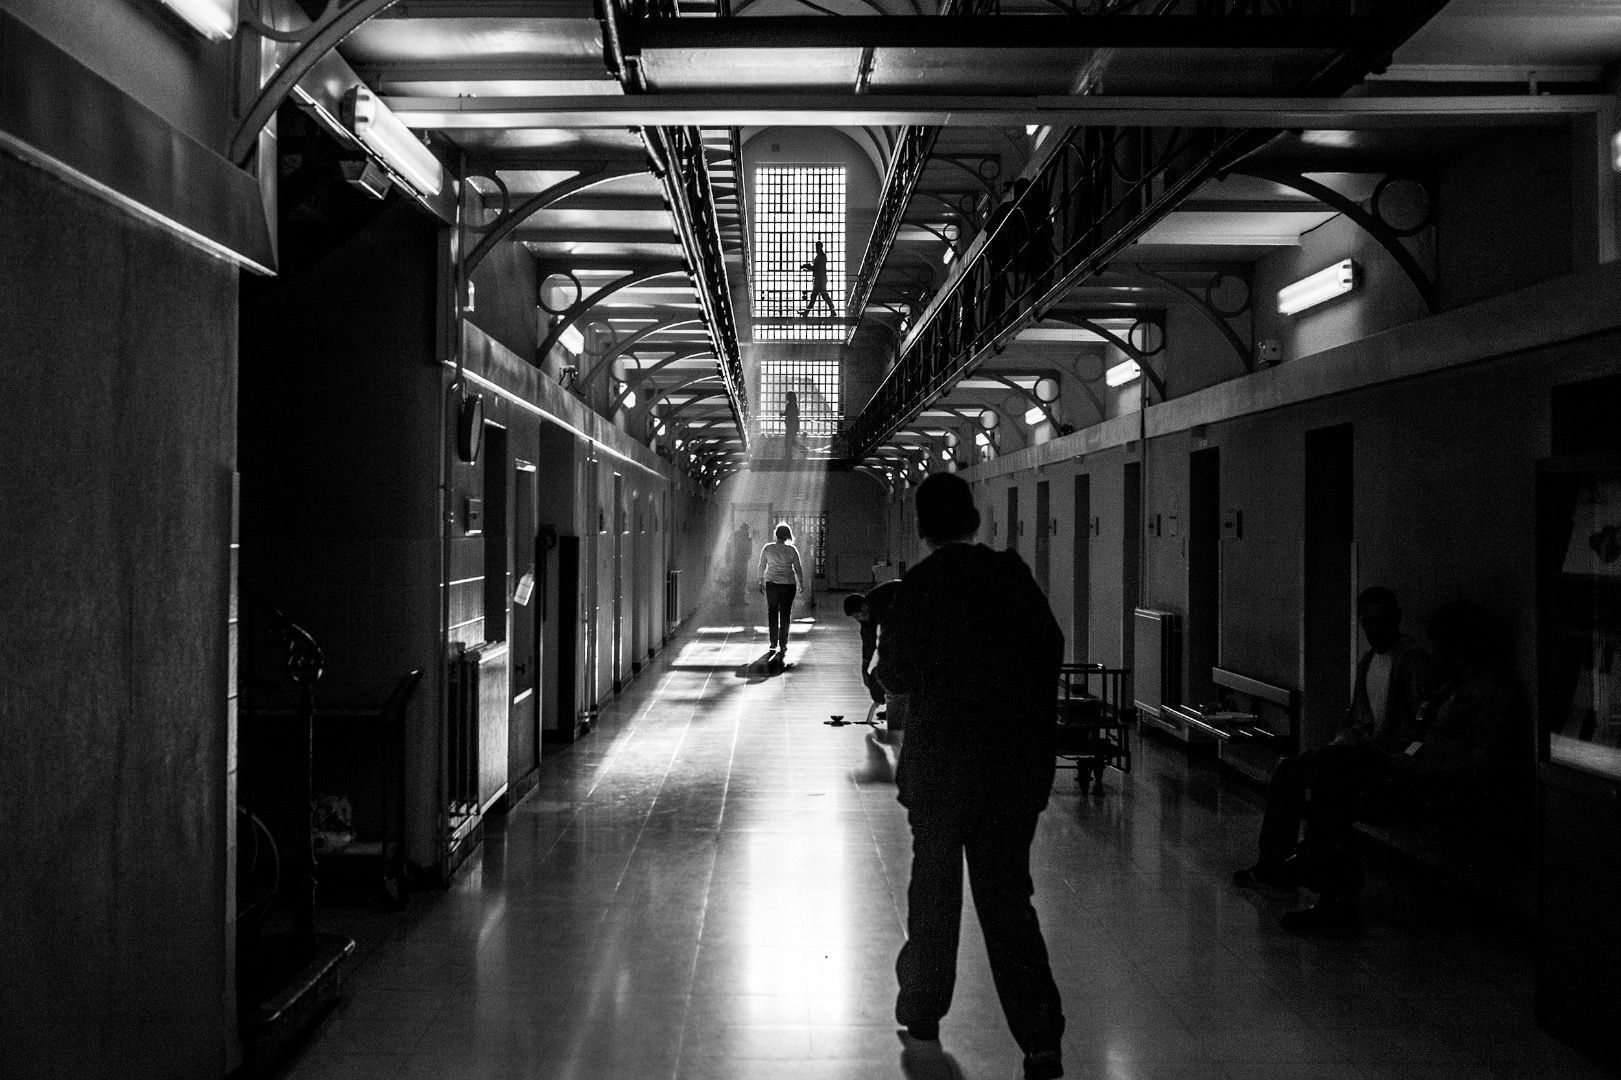 Life on the Inside: A Look Into Belgium's Prisons